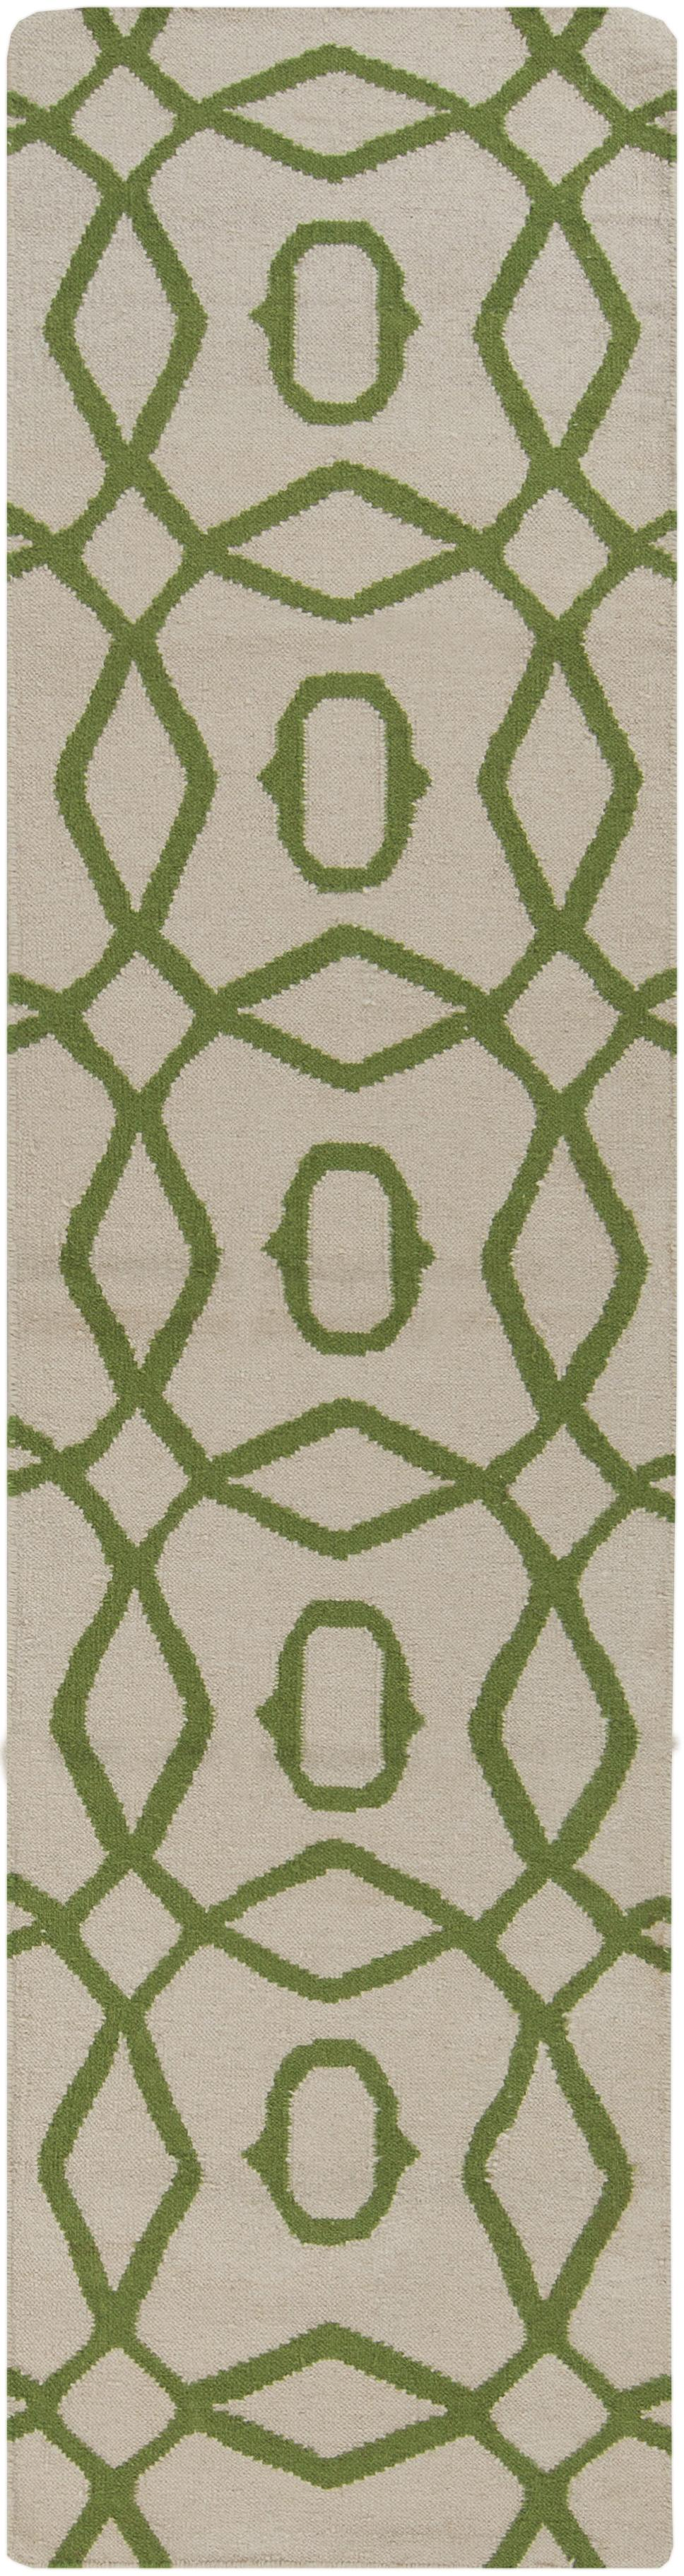 "Surya Rugs Frontier 2'6"" x 8' - Item Number: FT532-268"